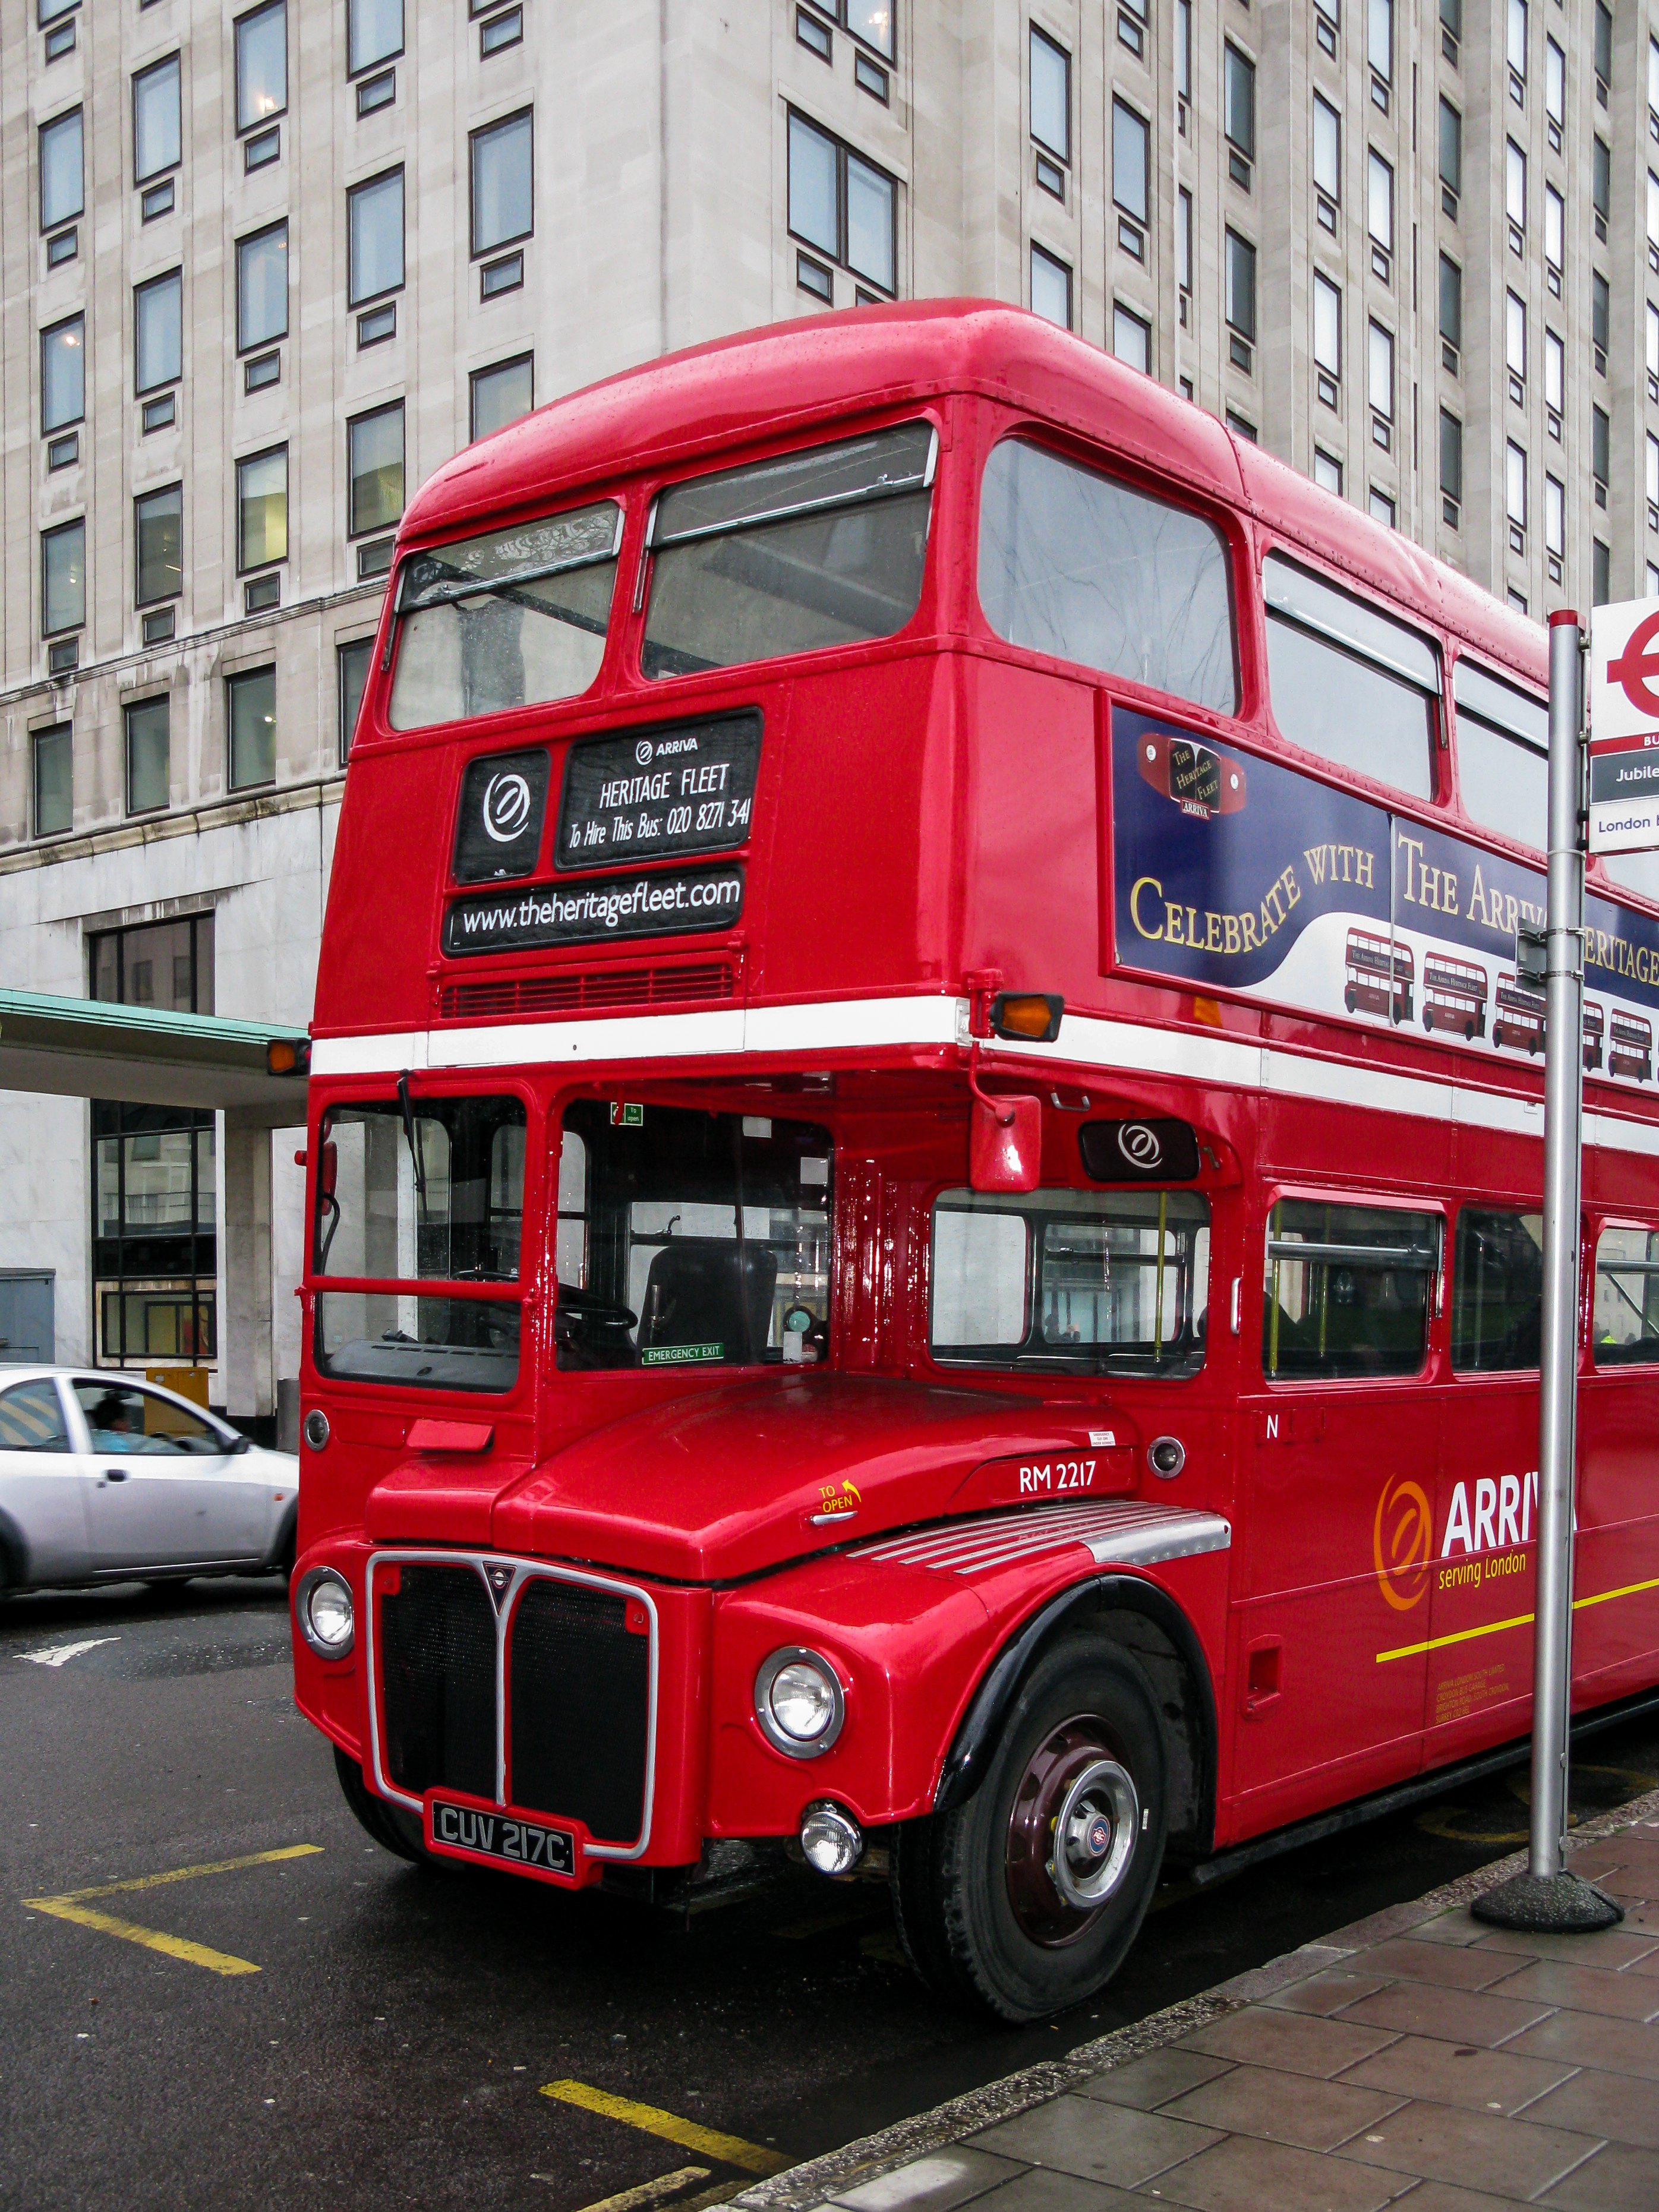 The Buses Designed for London - on display together for ... |London Transit Buses